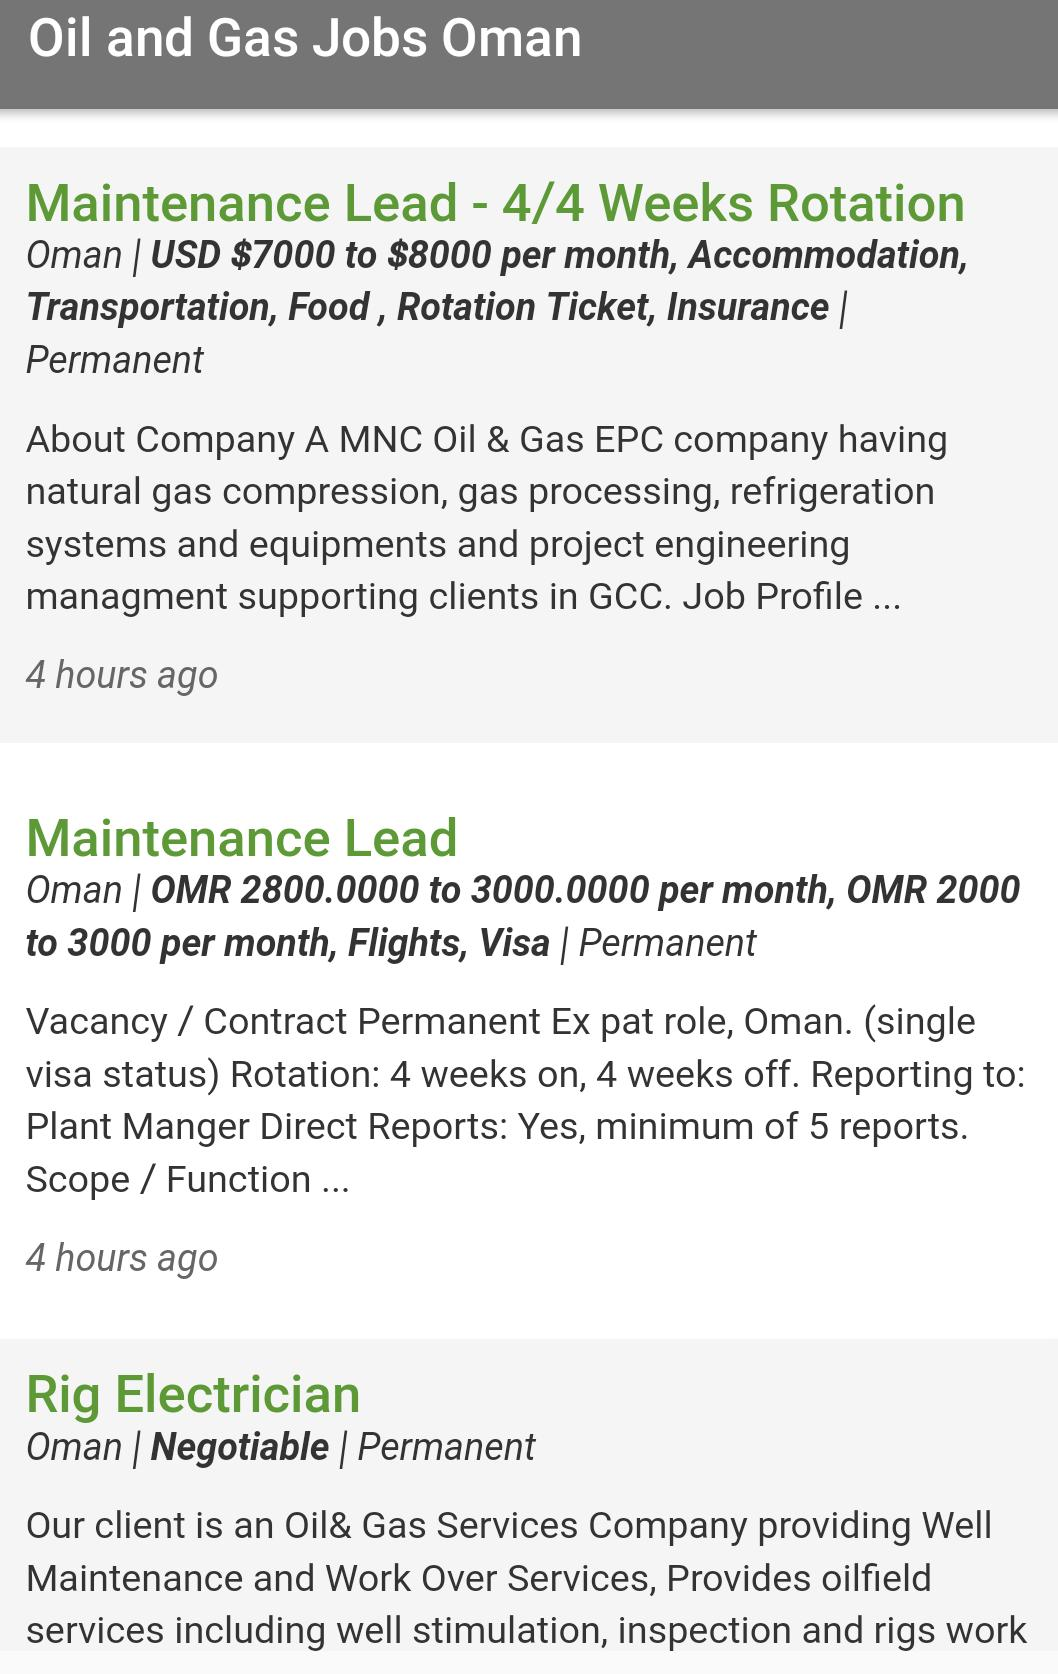 Oil and Gas Jobs Oman for Android - APK Download